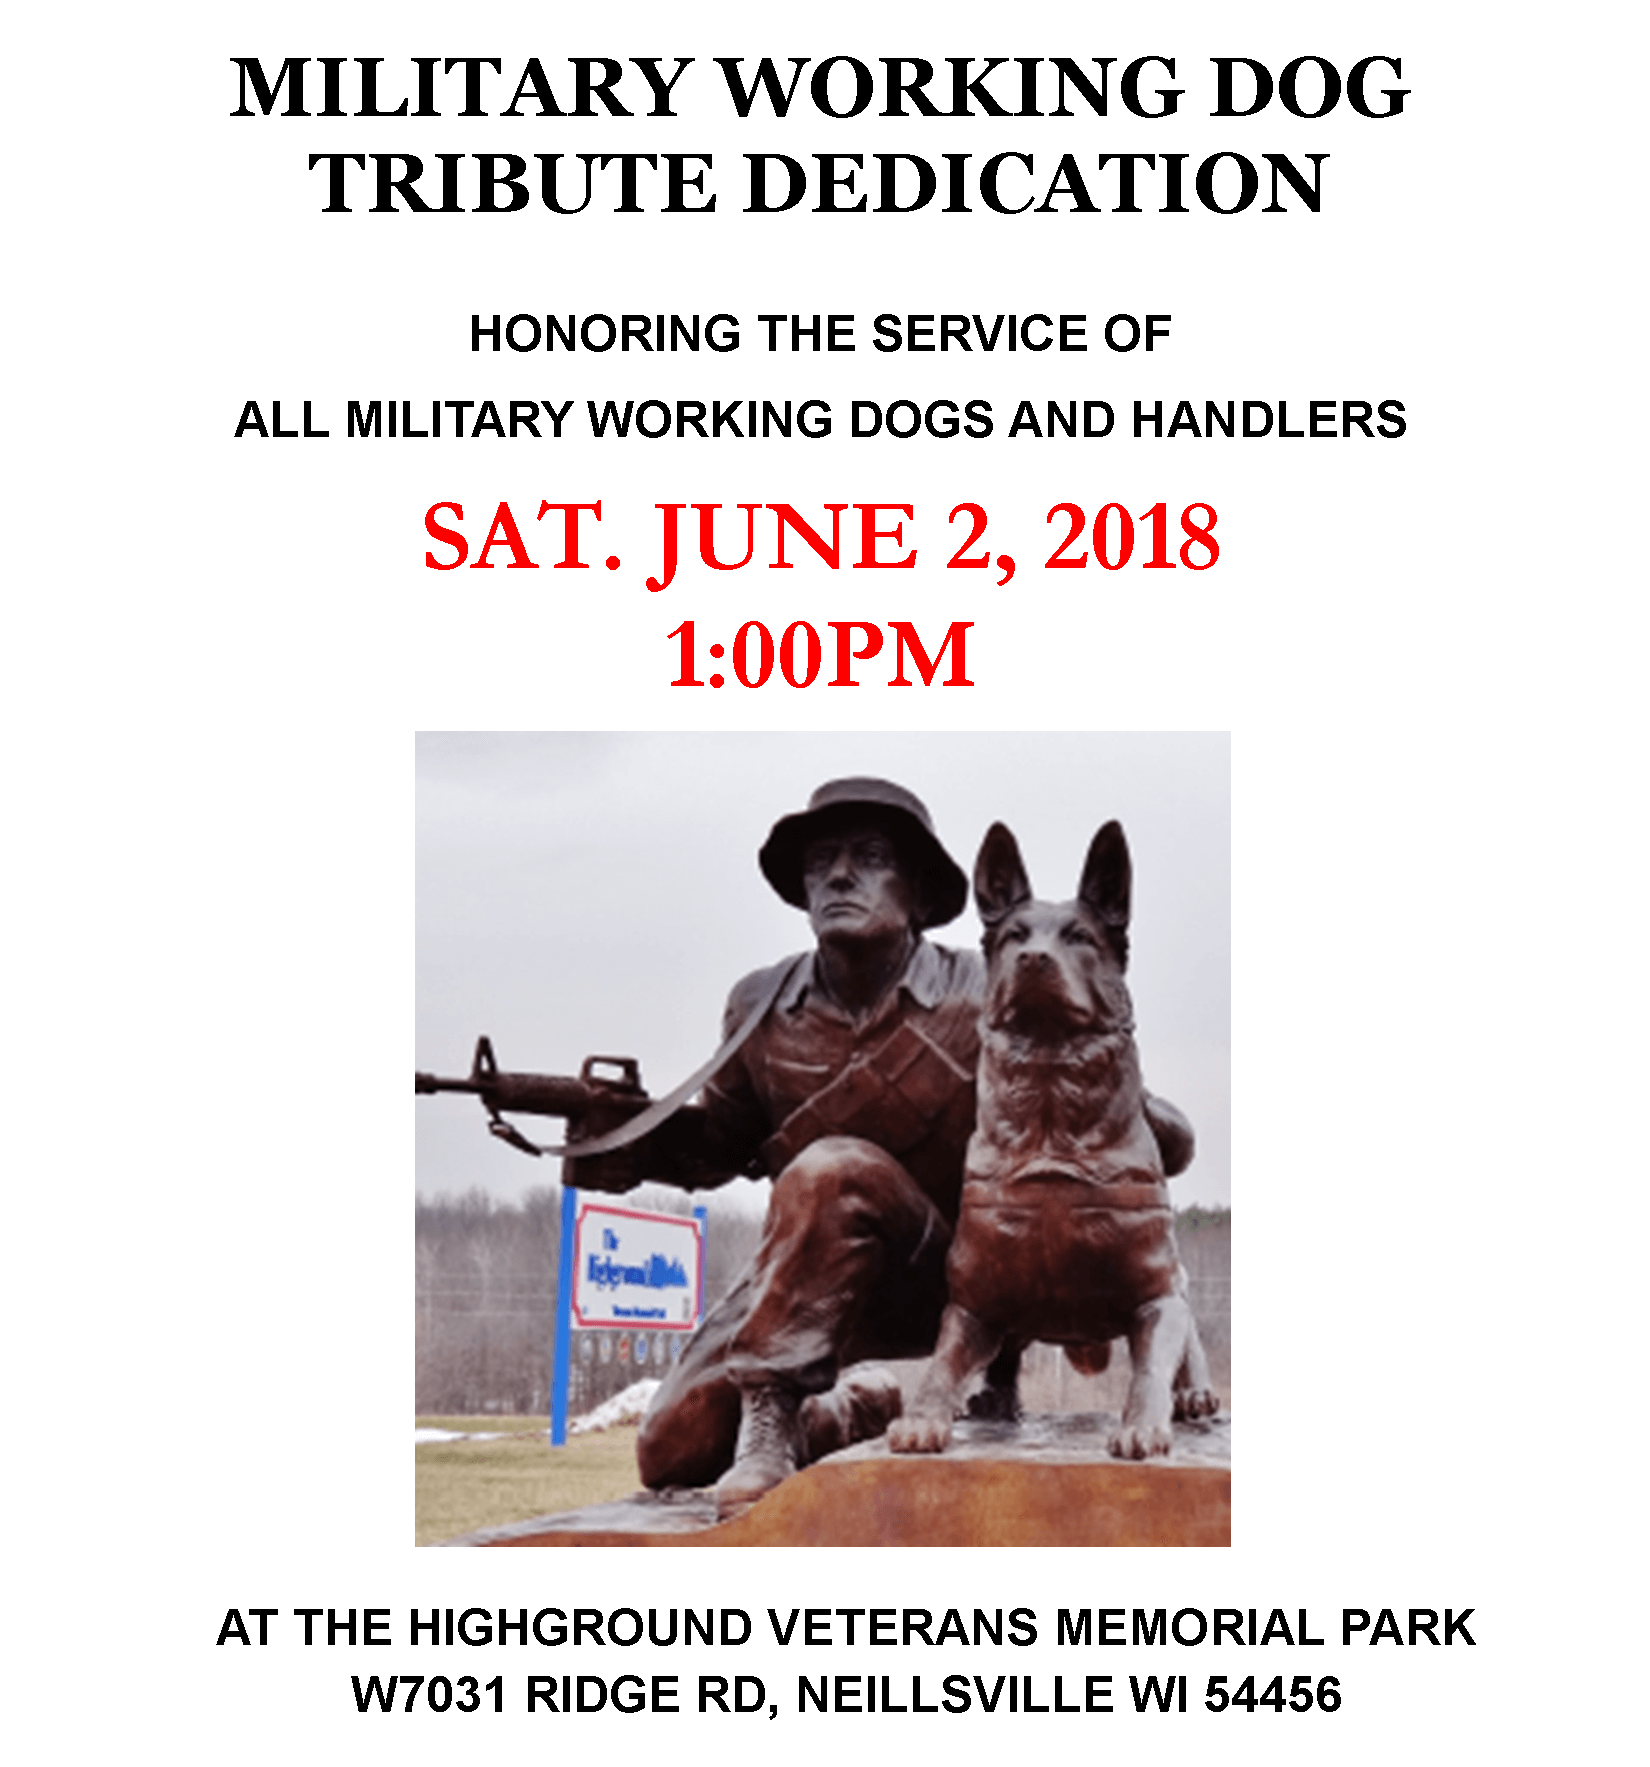 - draft 2018 MWD dedication poster - Events